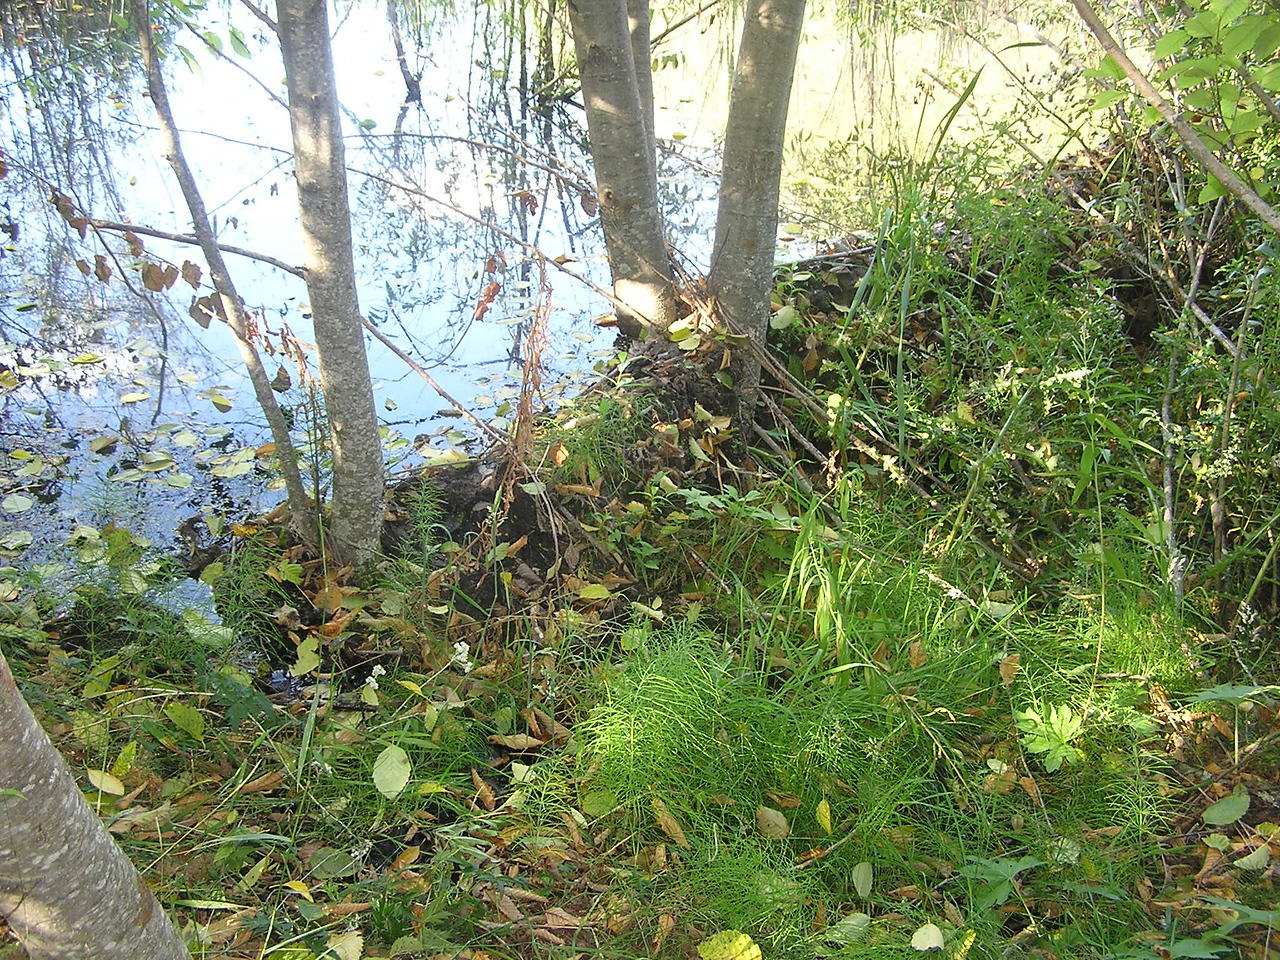 Beaver dam along the Hummocks Trail.  Beaver have moved back into the environment since Mt St Helens' 1980 eruption.